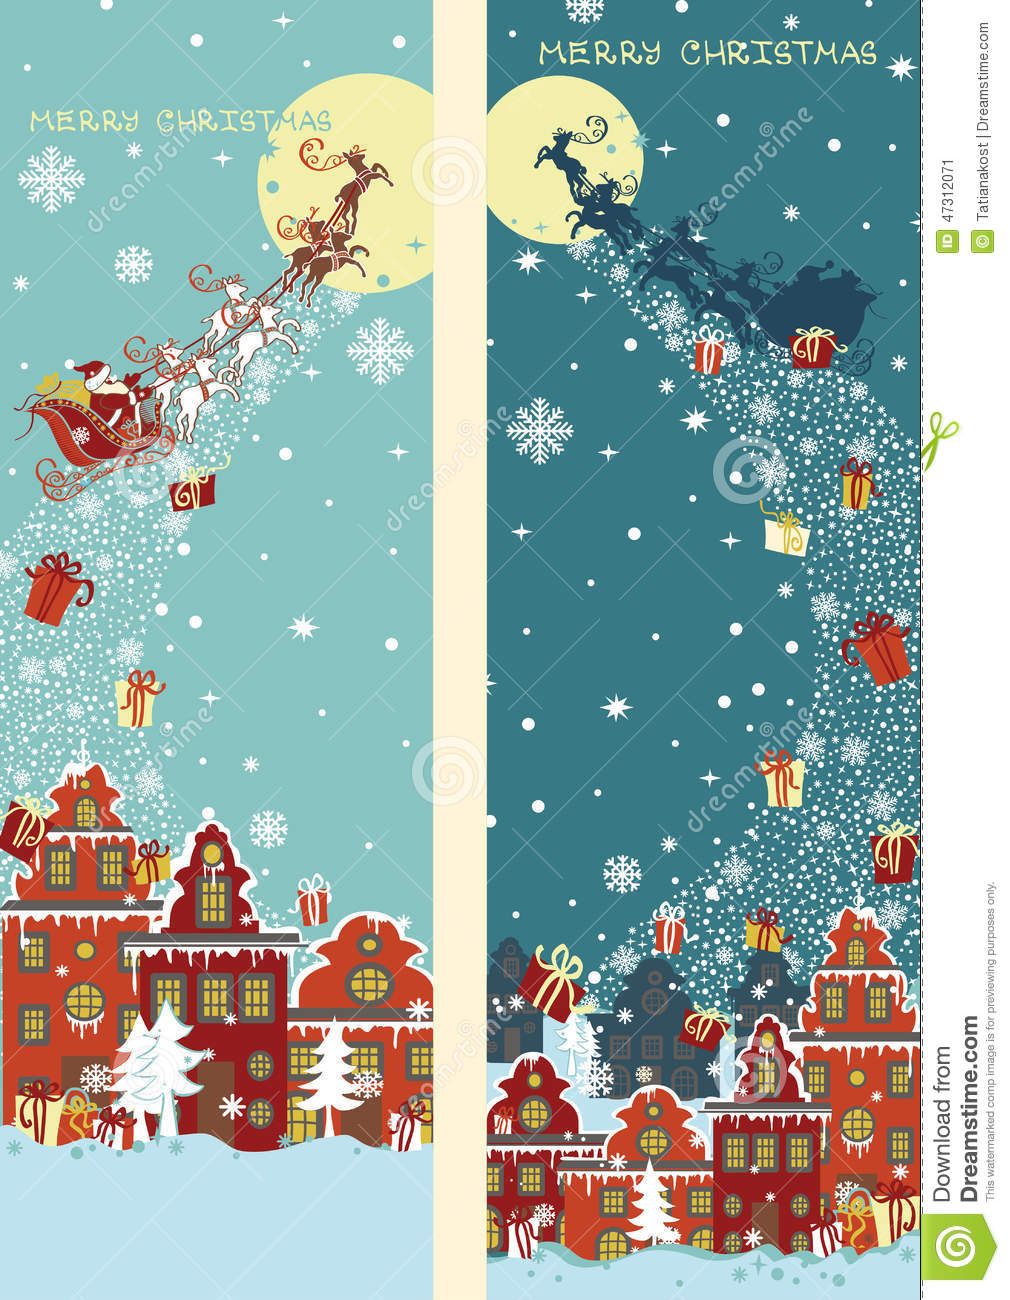 Santa Claus Sleigh With Reindeer Fly Over The City And Throws Gifts On Background Of Moon New YearChristmas Greeting Cardinvitation